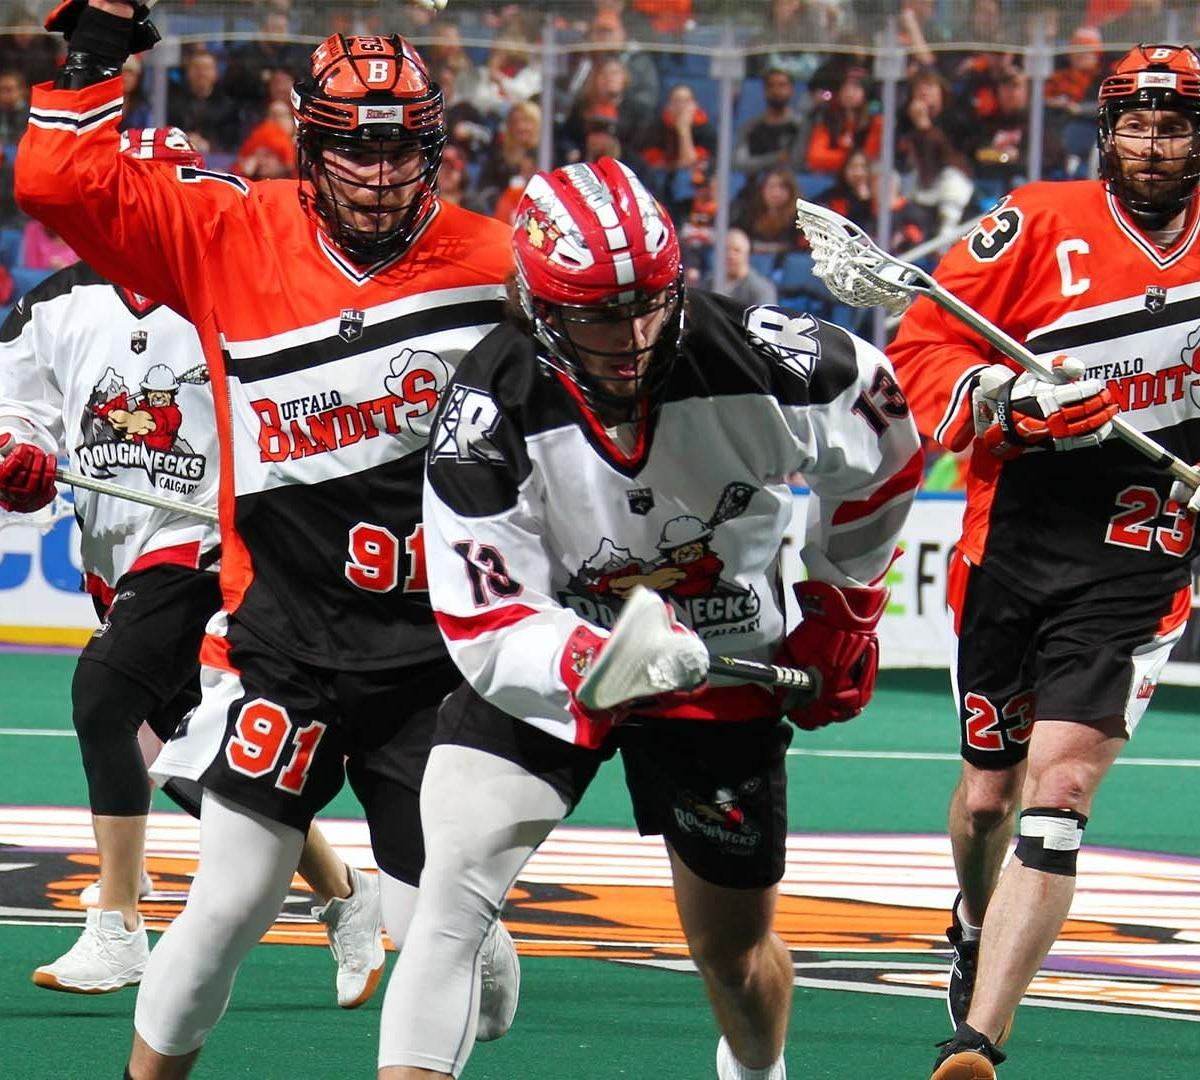 2019 National Lacrosse League Finals: How to Watch, Schedule and Series PreviewRelated